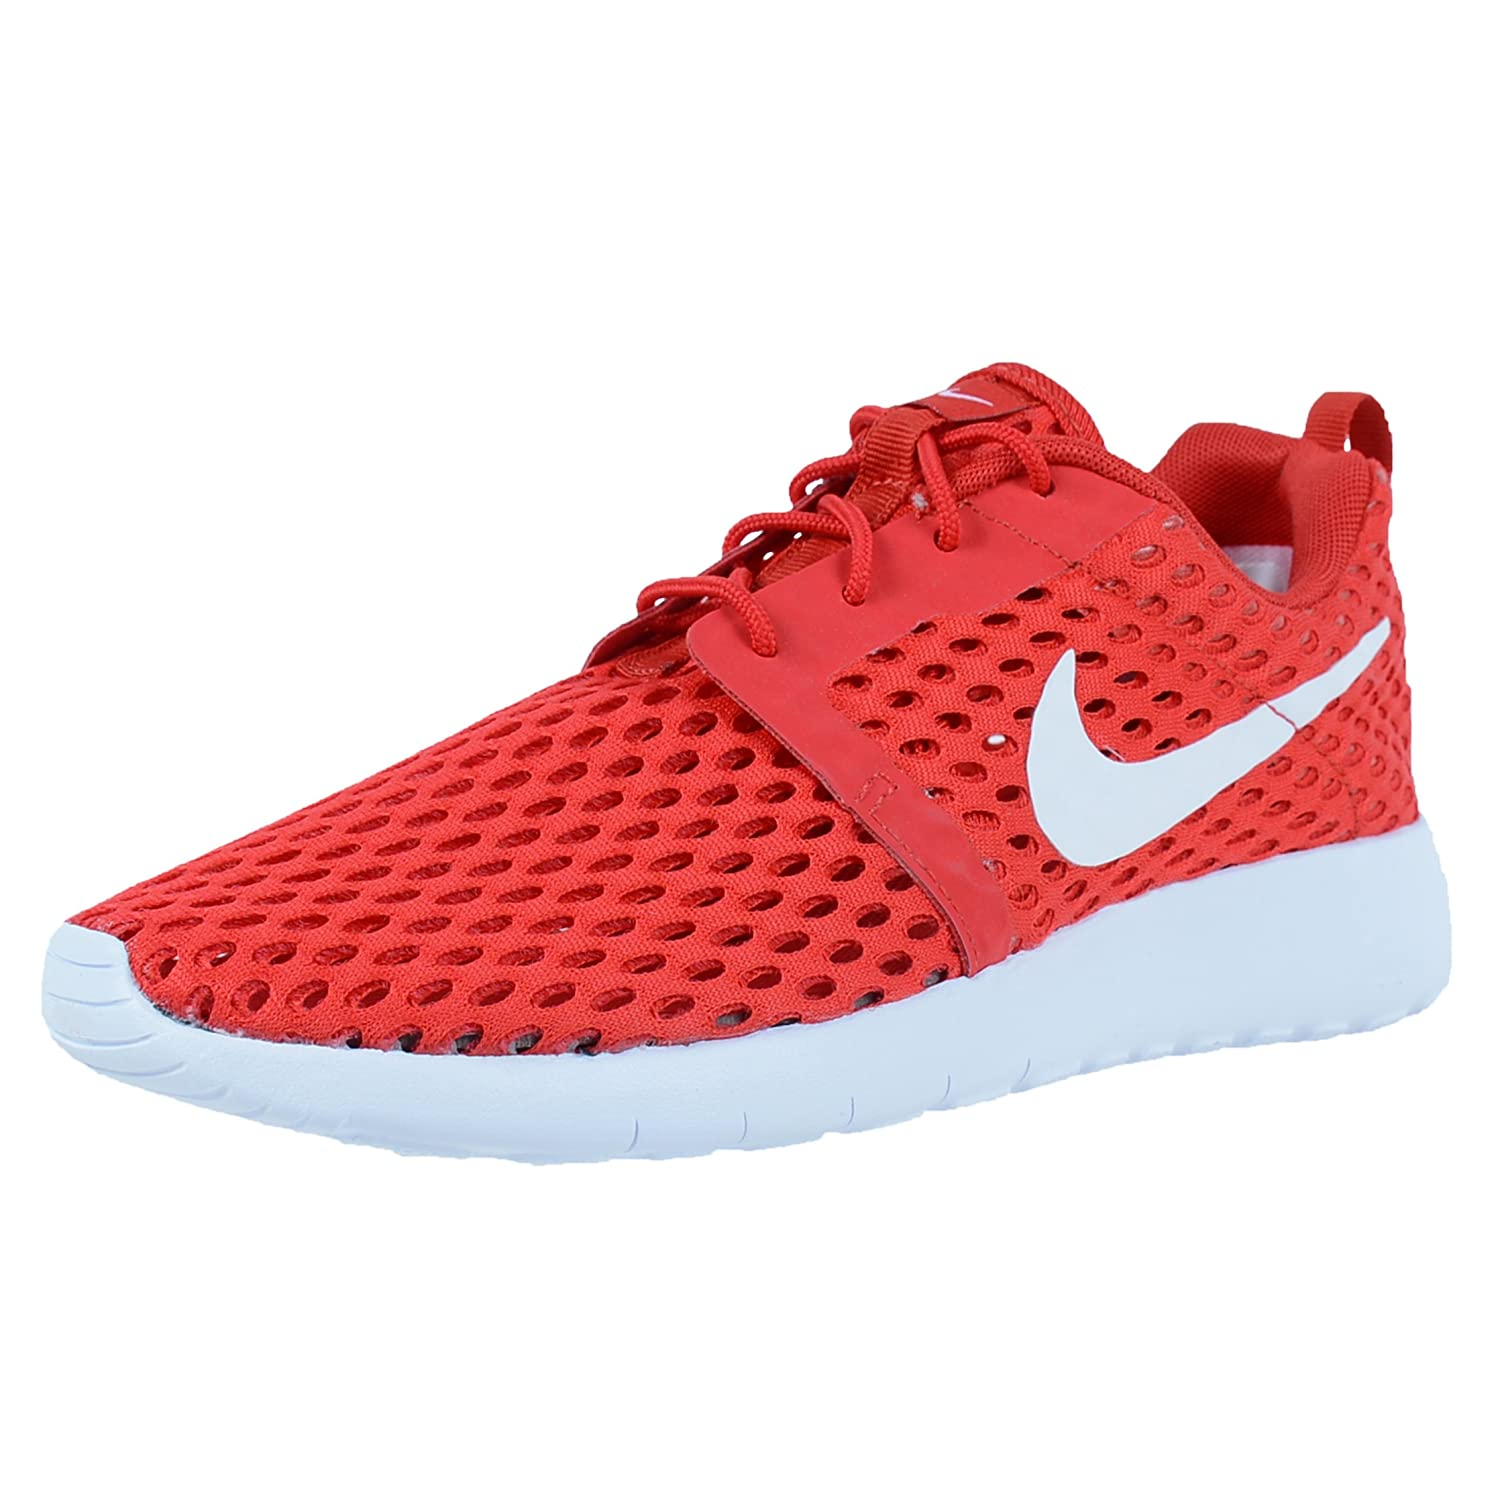 fa500ddfe22 ... netherlands amazon nike youth roshe one flight weight gs university red  white 705485 601 sneakers 855a8